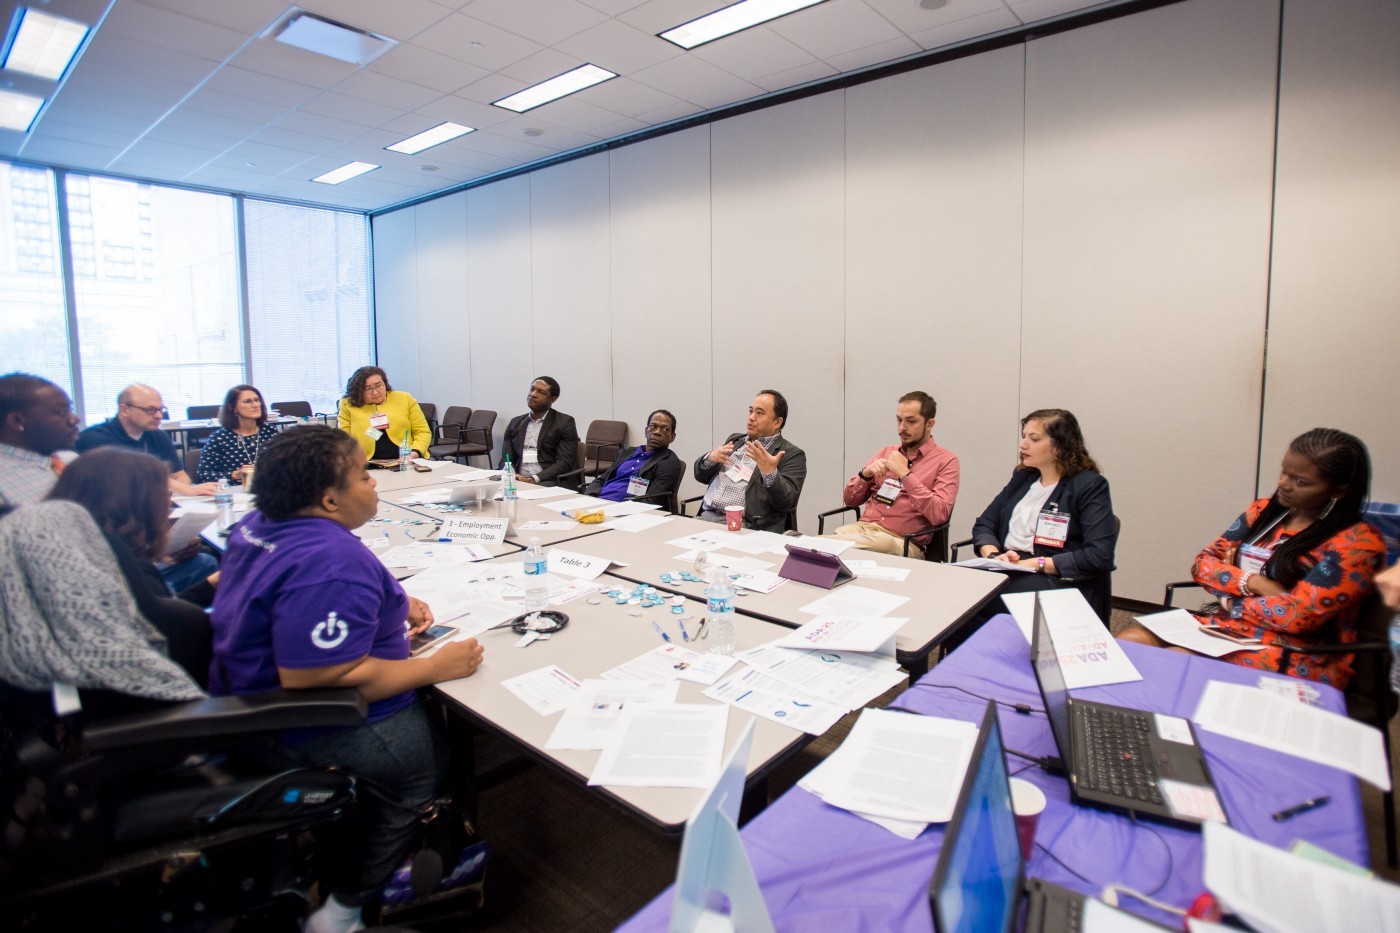 A group of people of various identities sit around a long conference table.